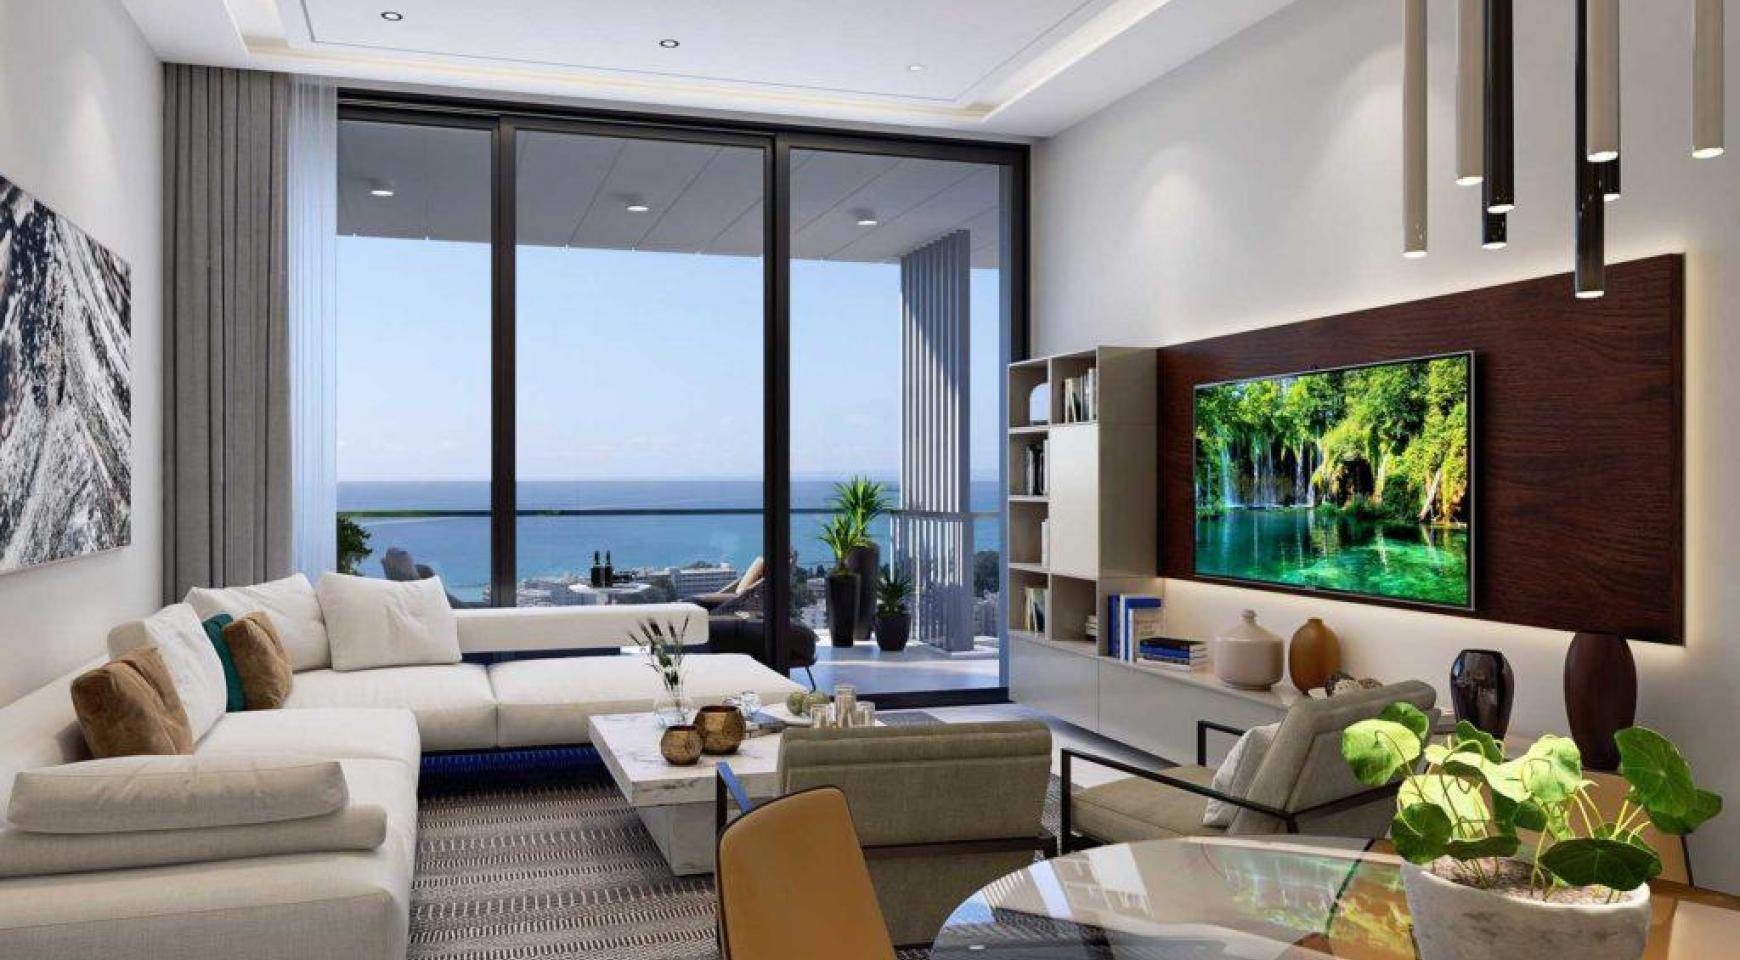 Contemporary 3 Bedroom Apartment with Sea Views in a Luxury Complex - 2